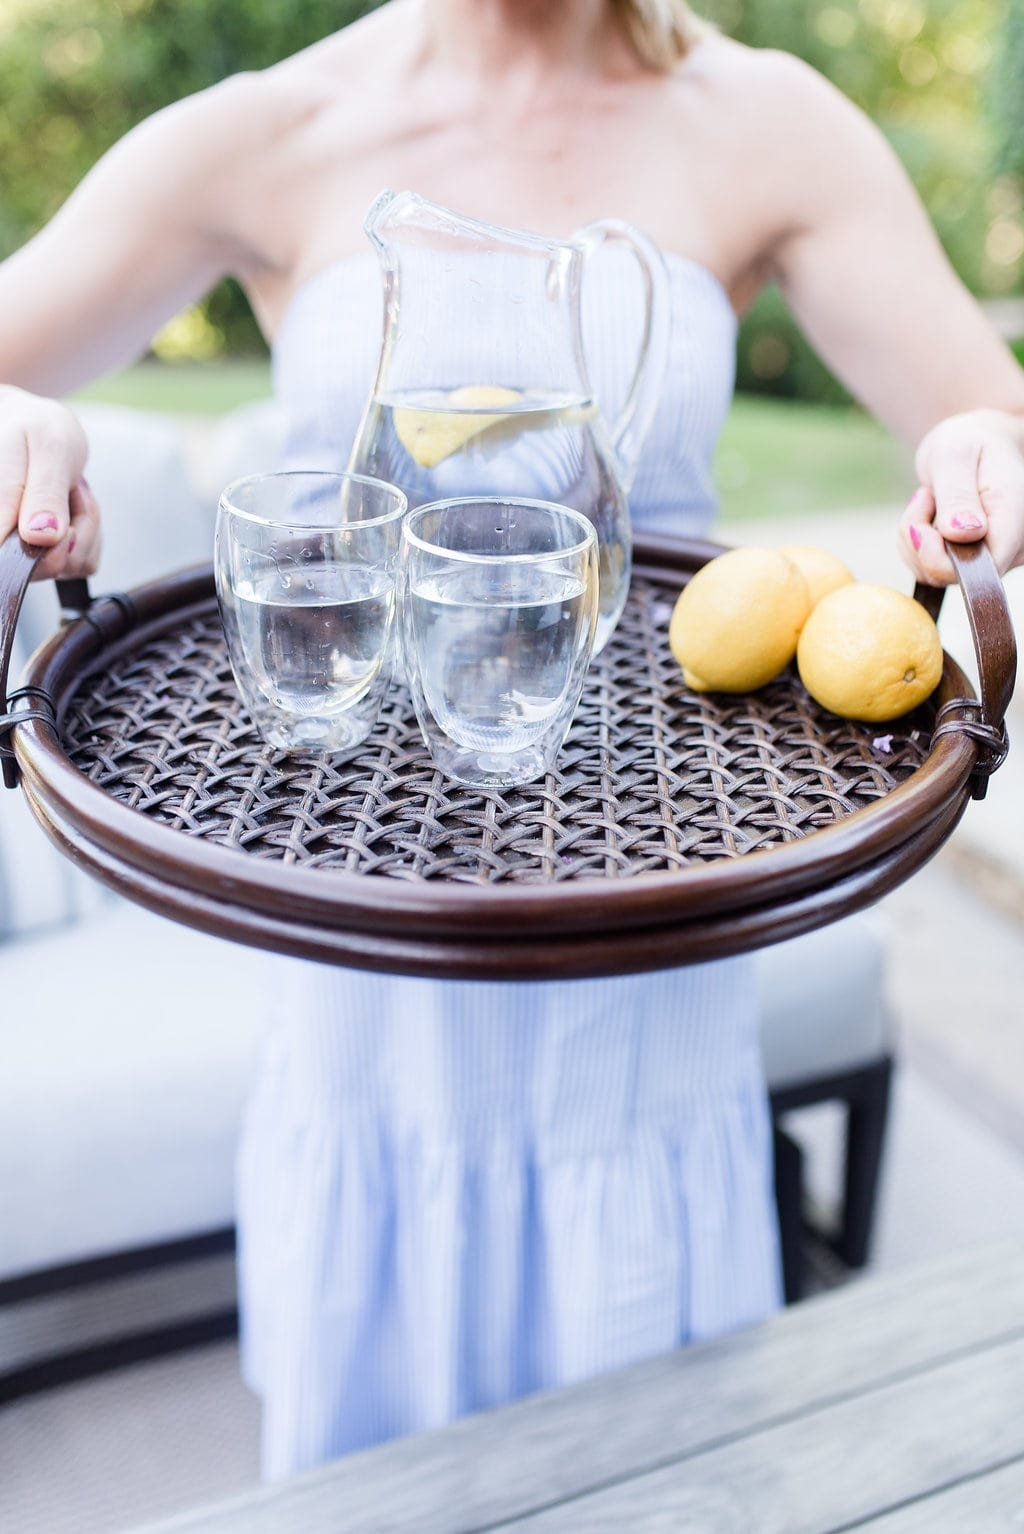 Threshold Tray from Target. Wood woven tray with lemons and glasses of water.